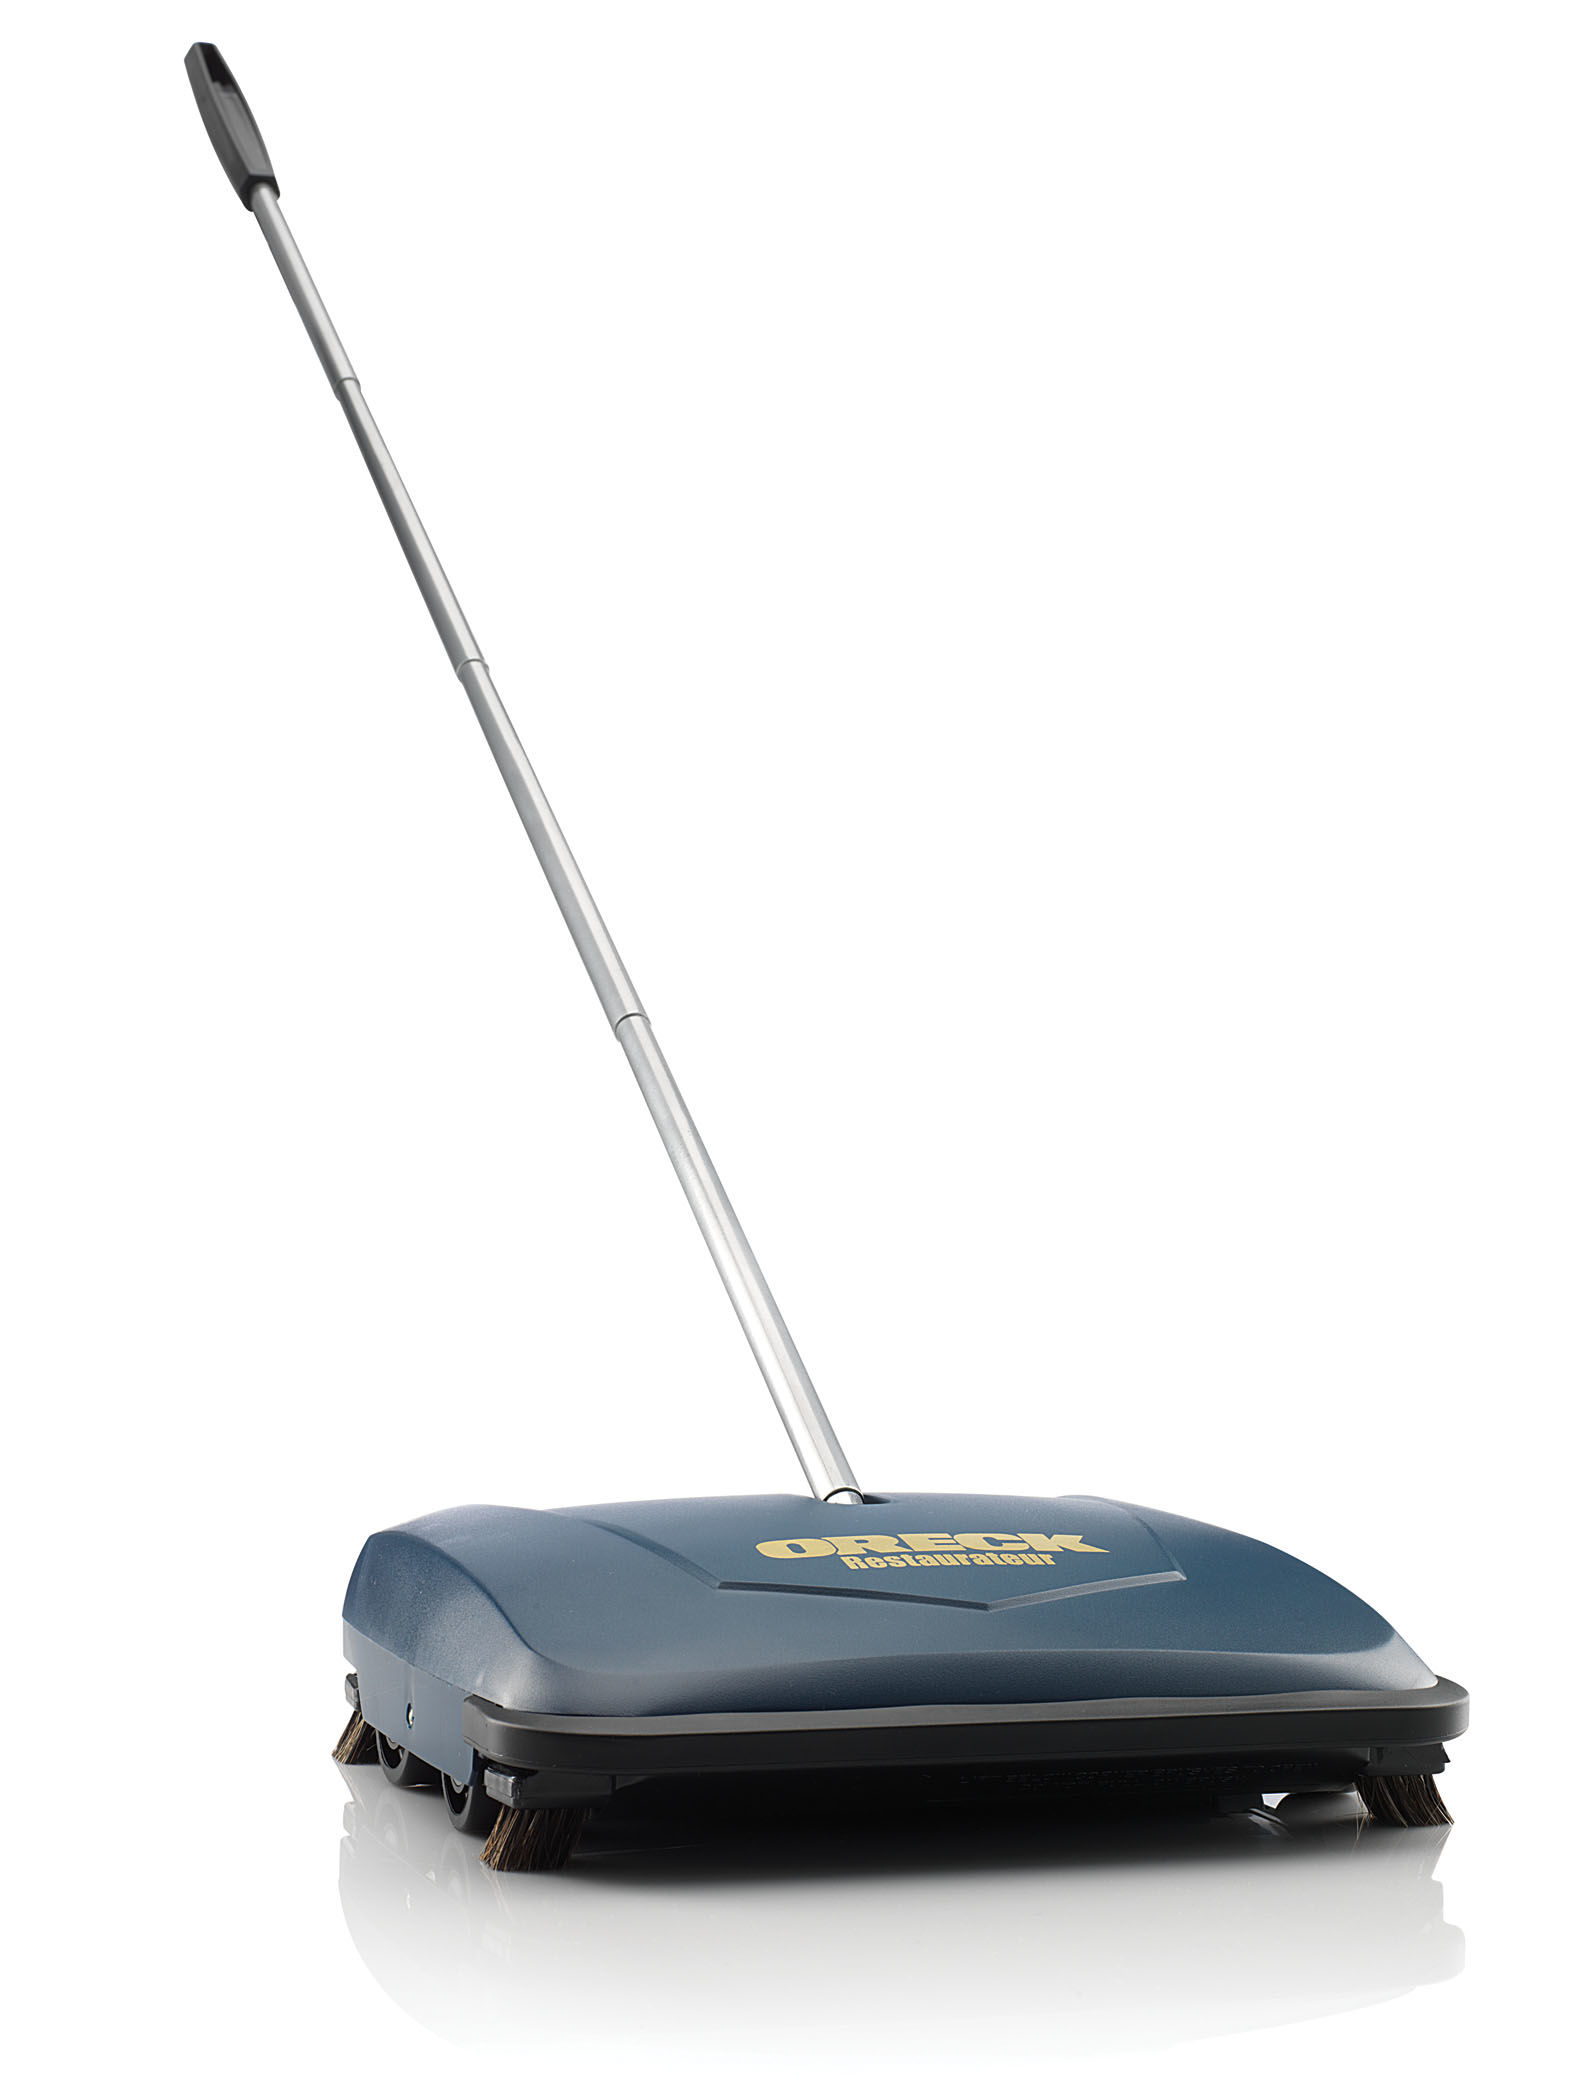 Oreck 174 Restaurateur Floor Sweeper Oreck Commercial